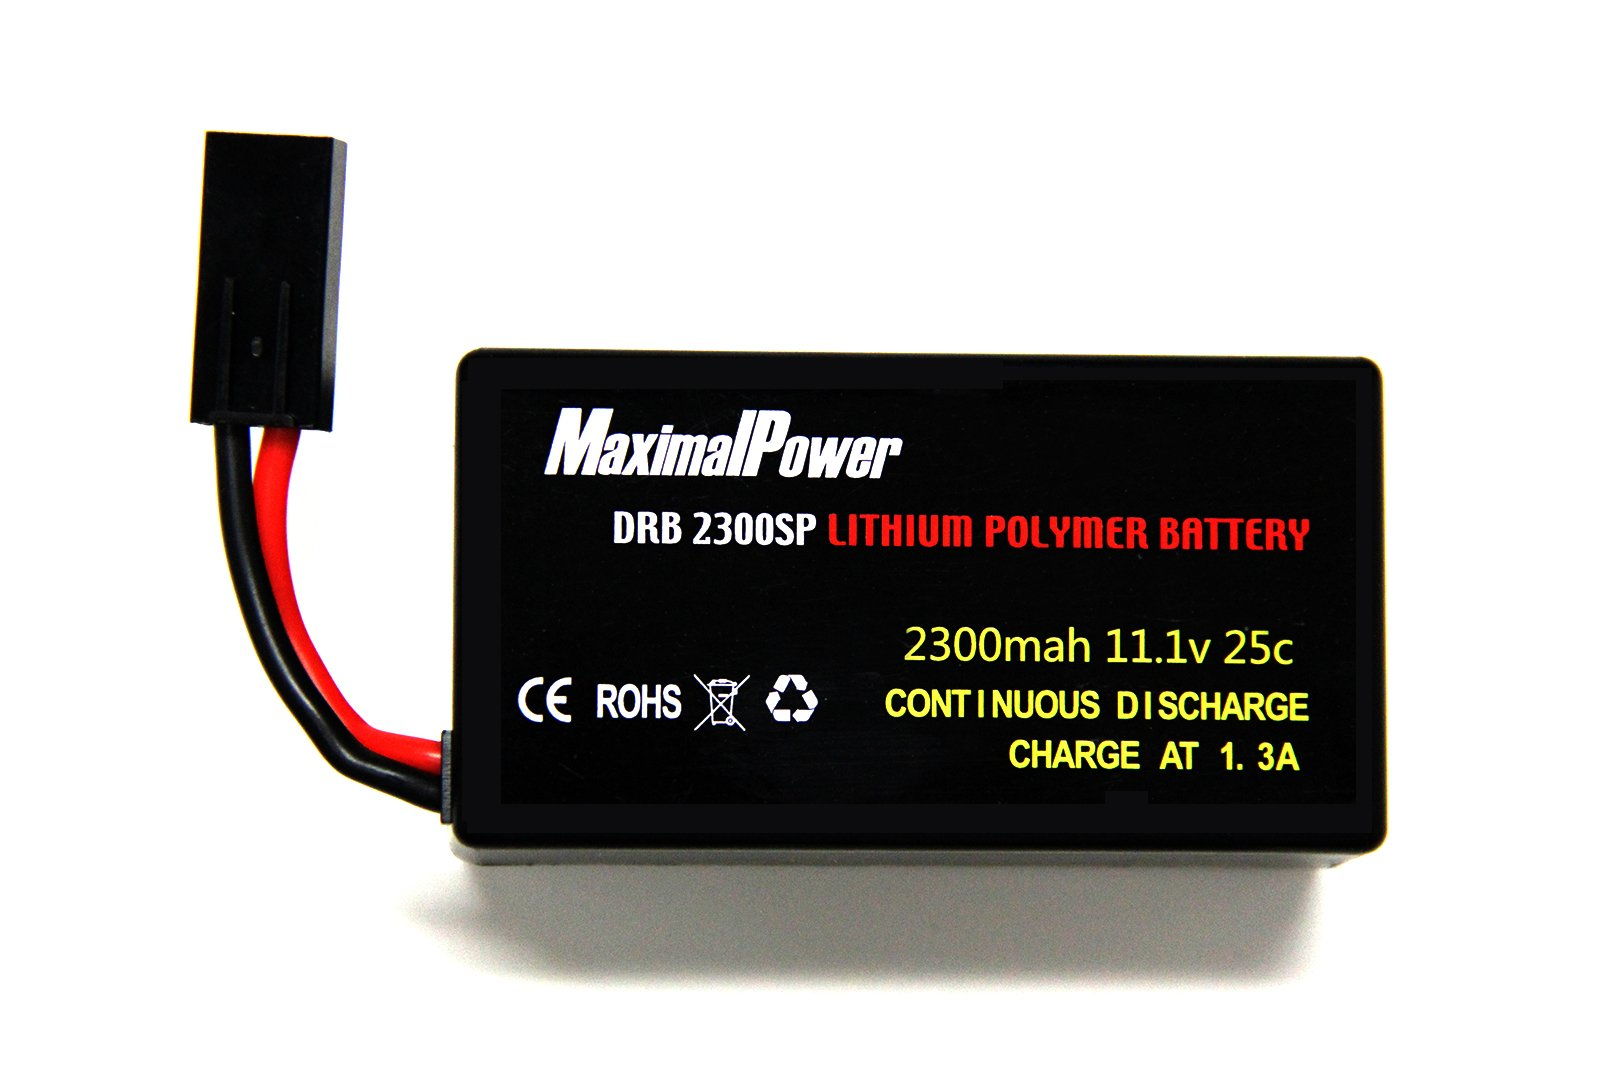 MaximalPower Gifi Power LiPo Battery or Charger for Parrot AR.Drone 2.0 & 1.0 Quadricopter (1 Battery 2300mAh)